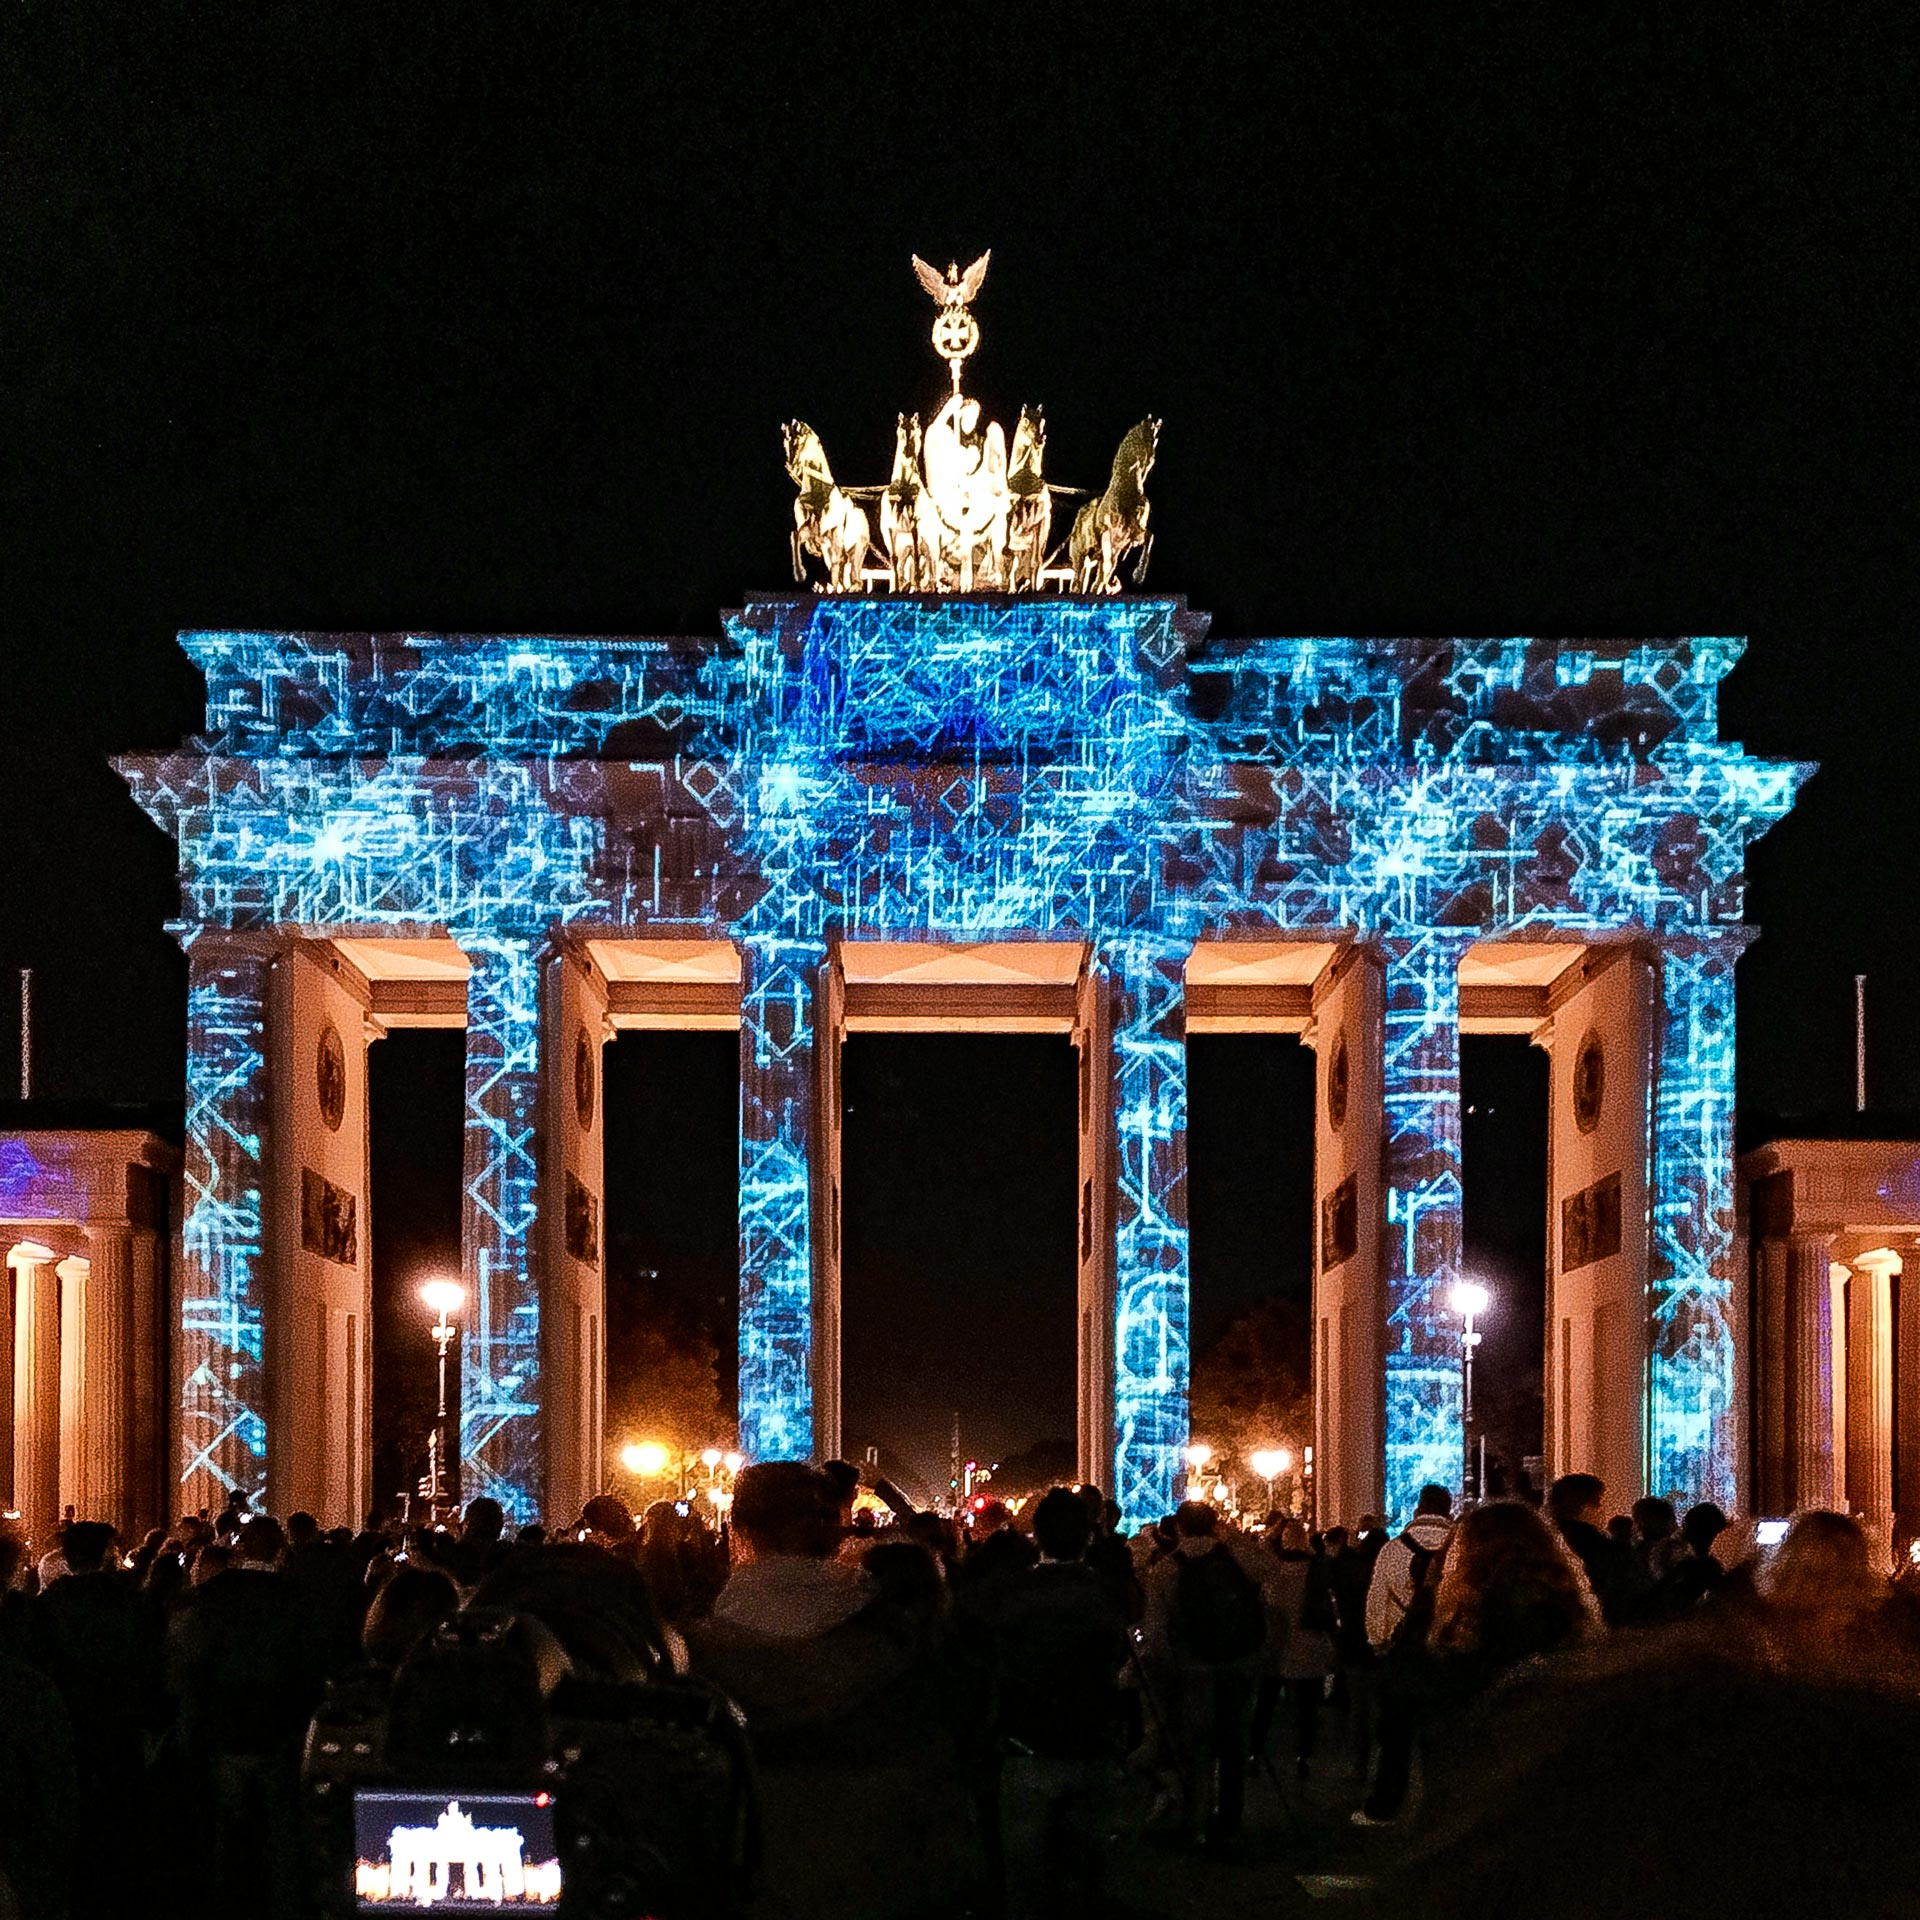 Festival of Lights 2017: Das Brandenburger Tor blitzt